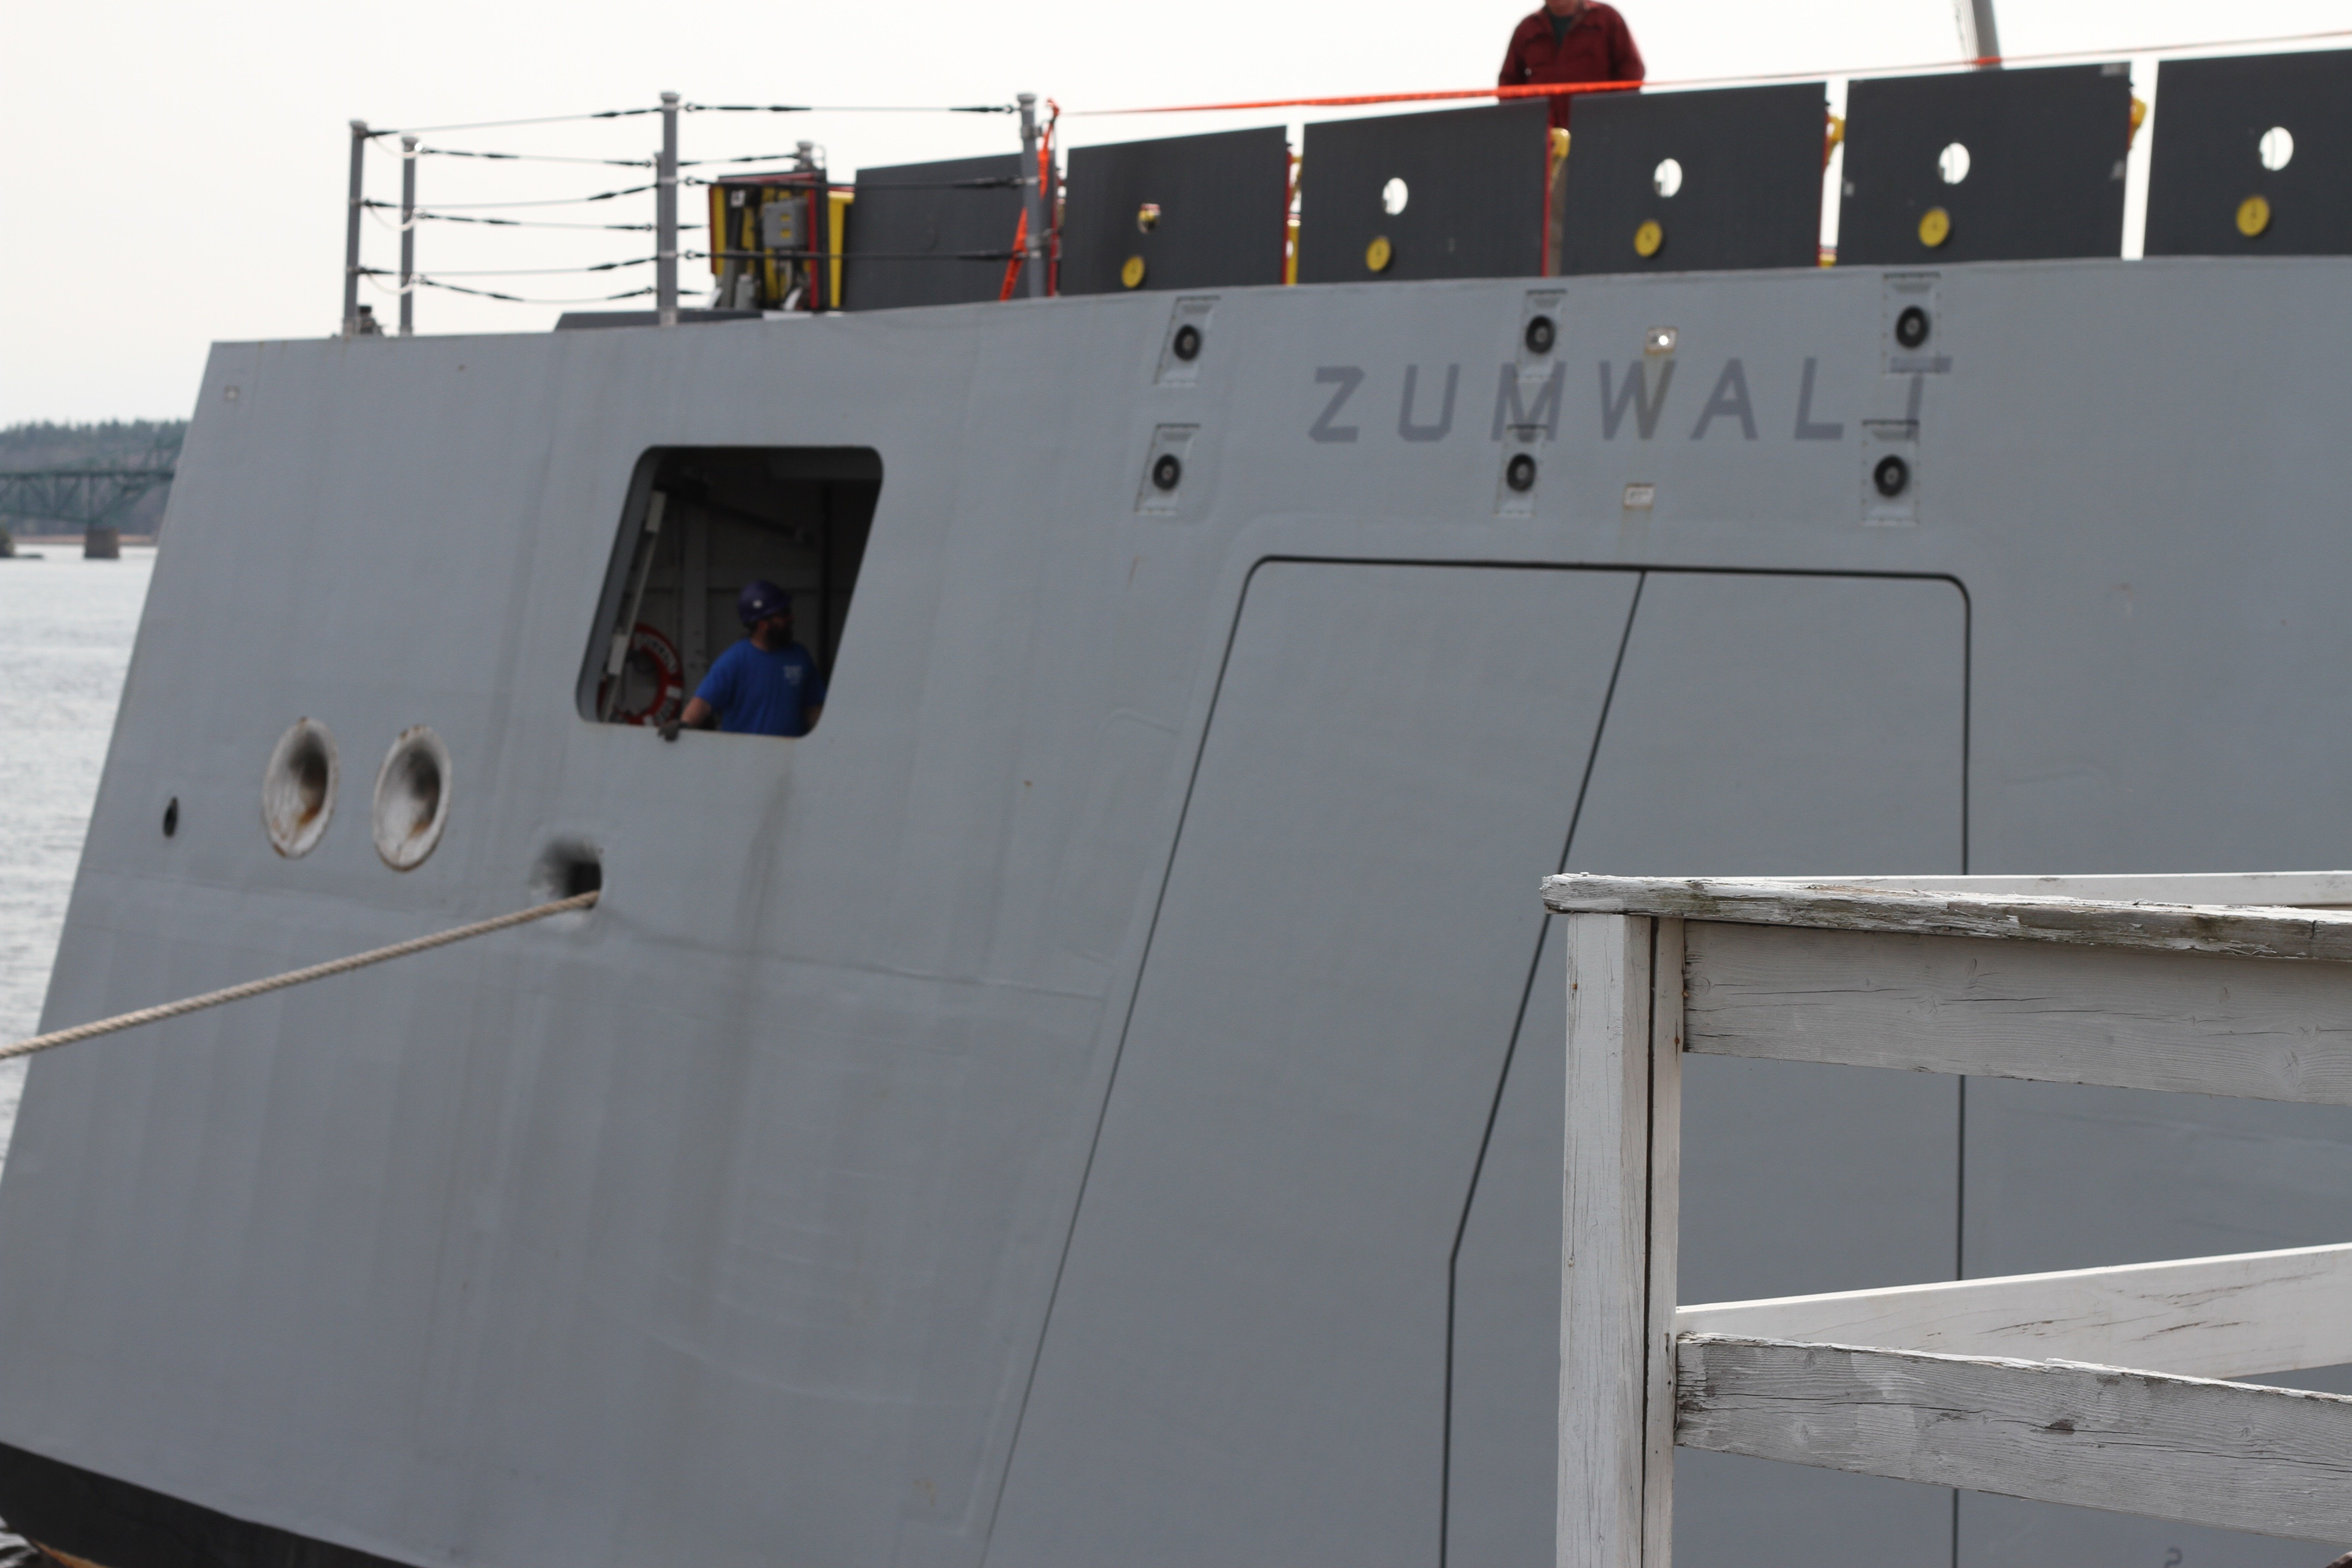 One of Zumwalt's aft mooring stations on May 13, 2016. USNI News Photo